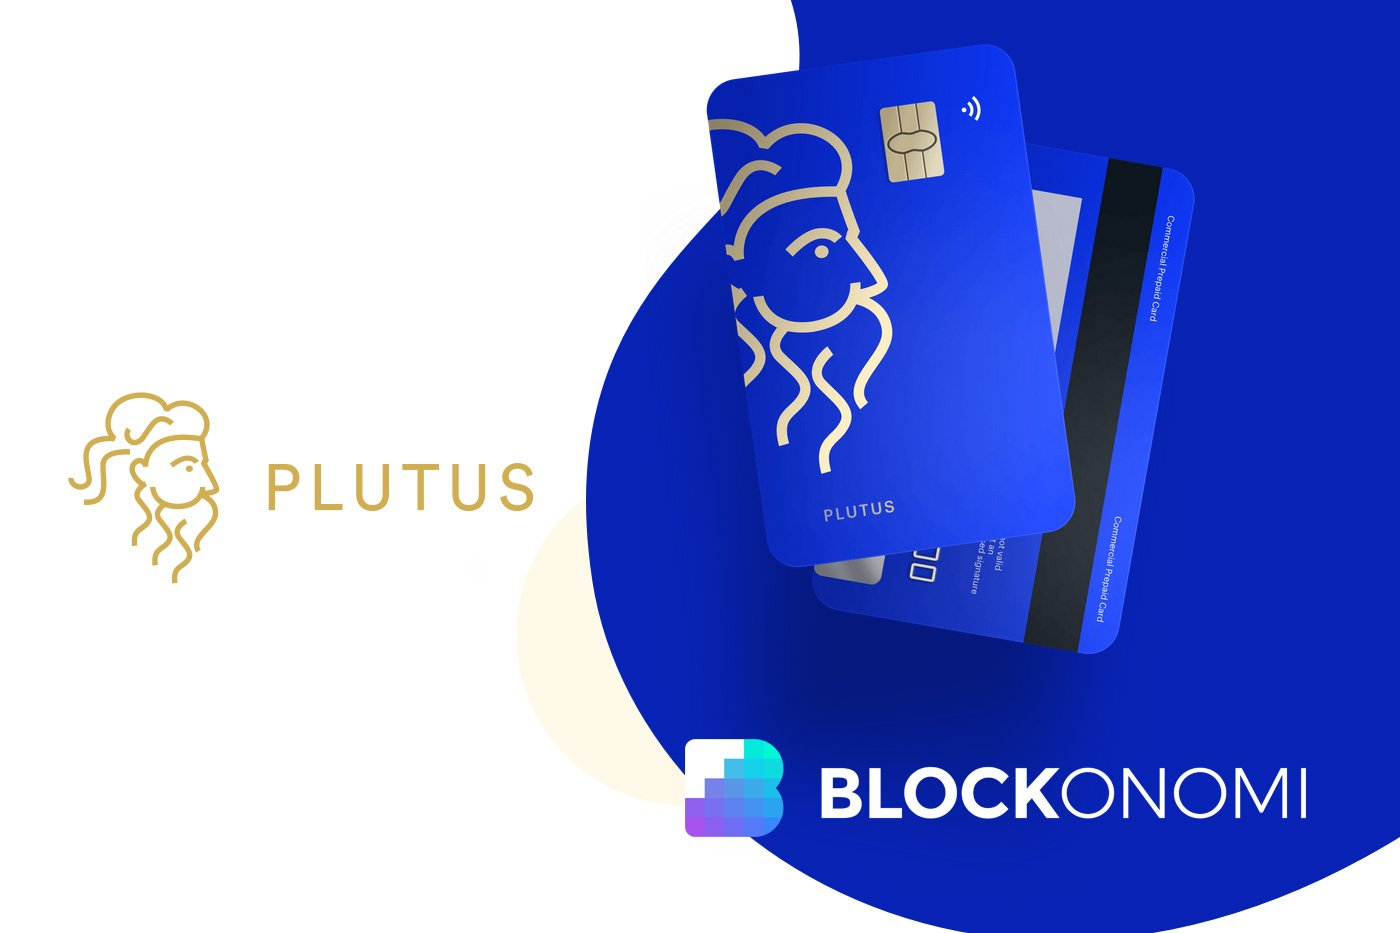 Plutus Brings Cash-back Option to Expanding Crypto Loyalty Rewards Arena